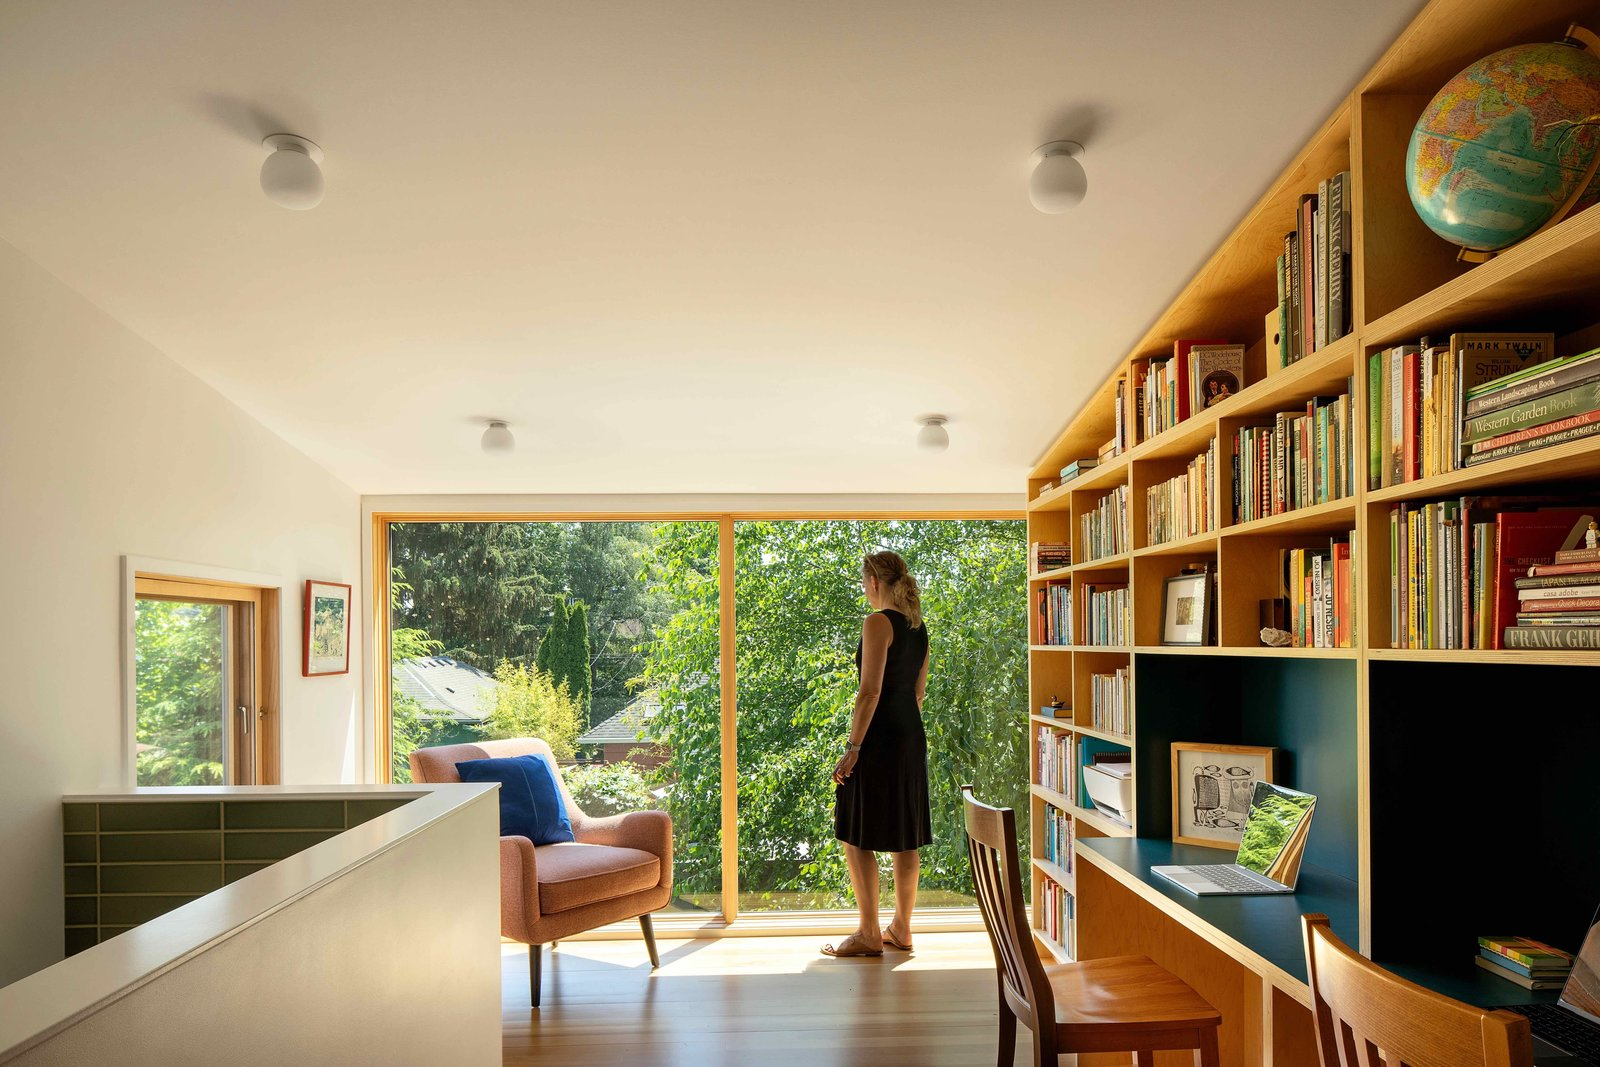 Stephens Street by Beebe Skidmore Architects